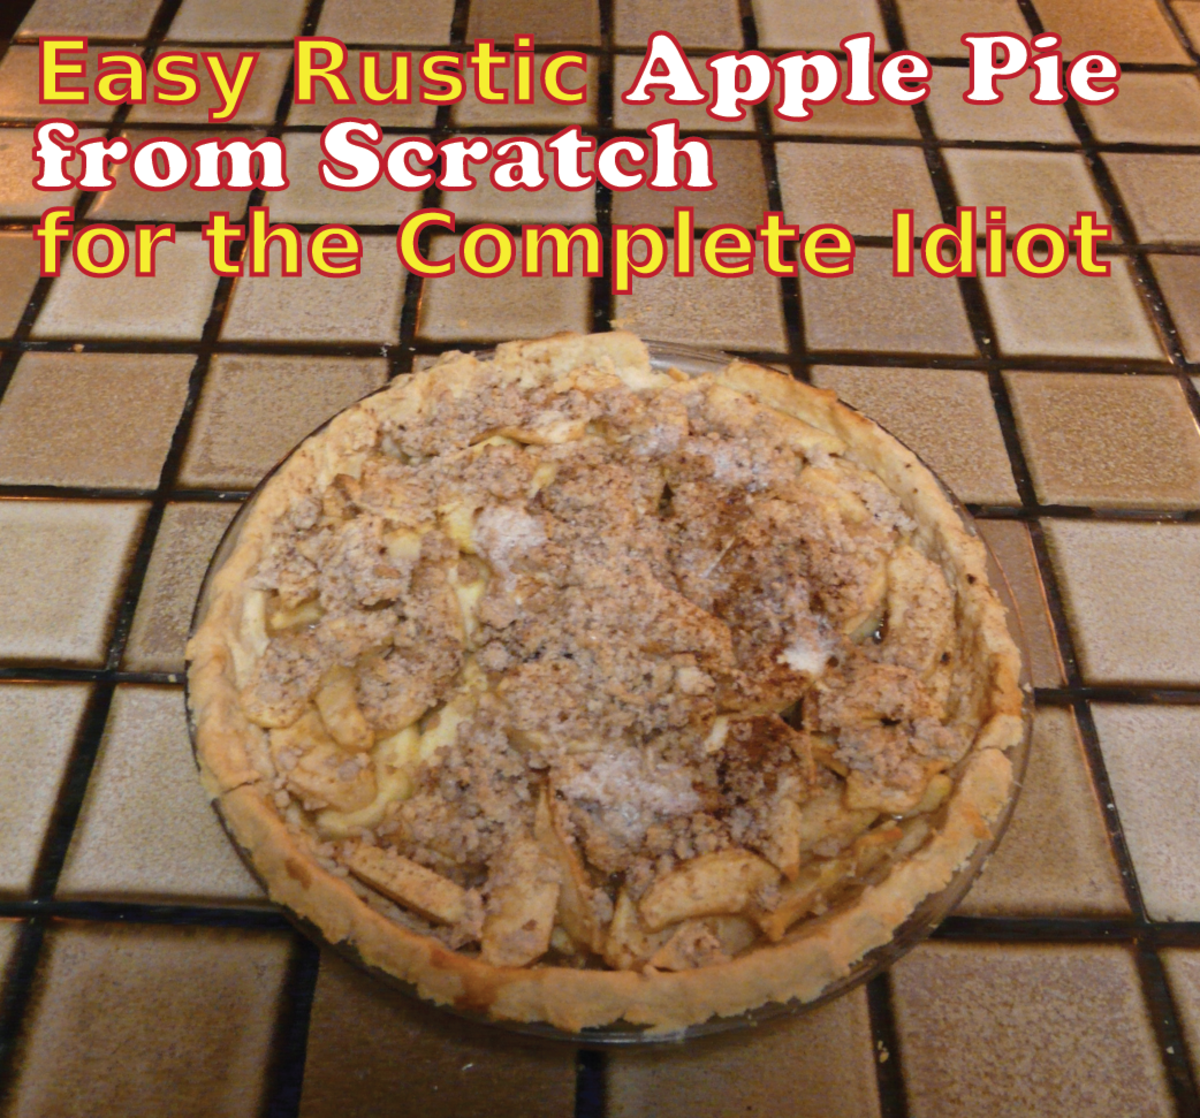 Easy Rustic Apple Pie From Scratch Recipe for the Complete Idiot